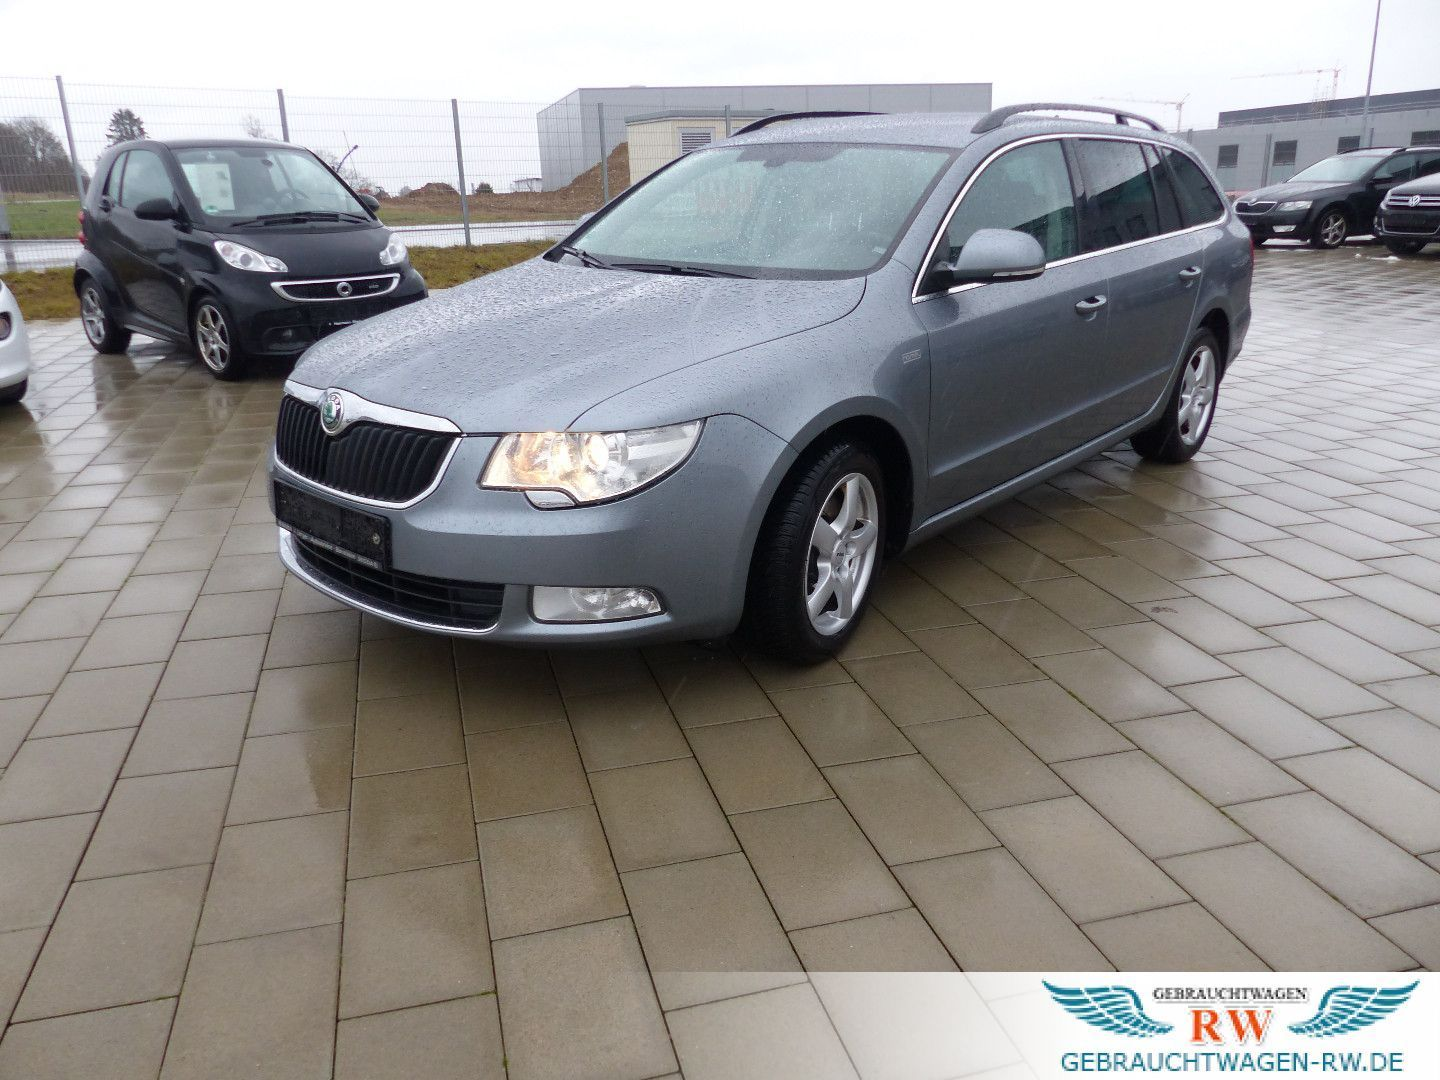 SKODA Superb 2.0 TDI DSG Family